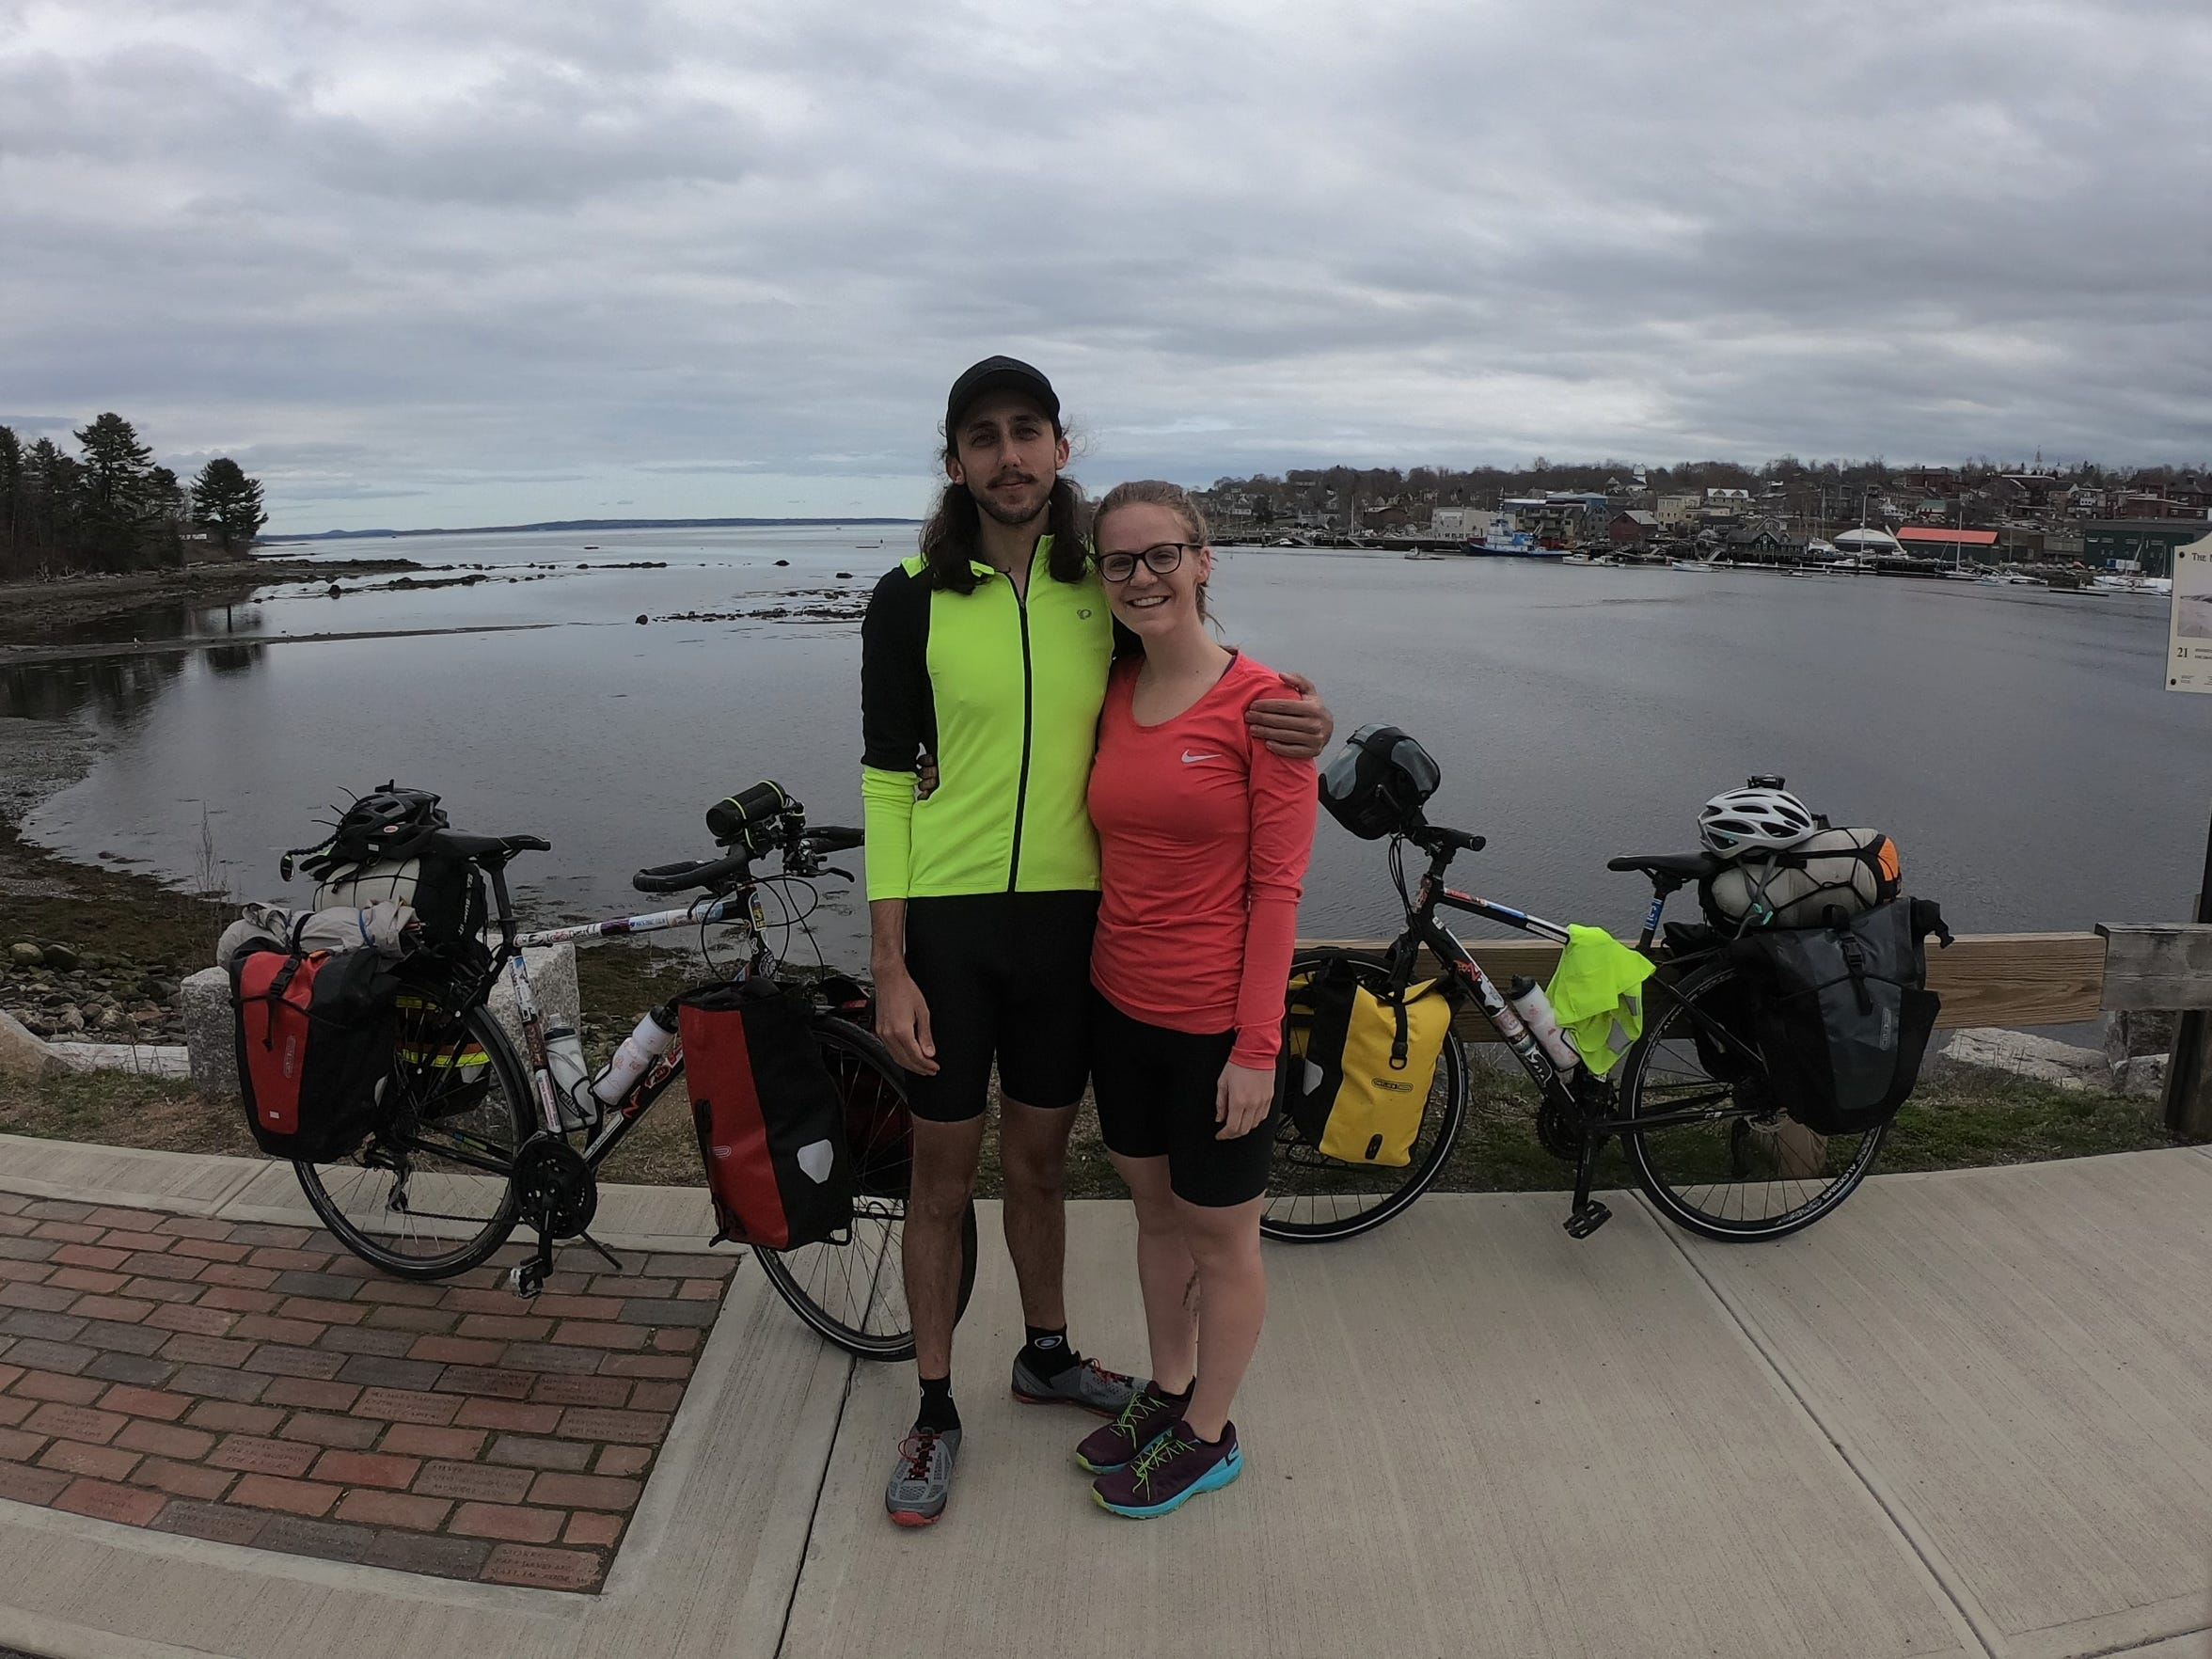 Daniel Thakur, 25, and Lauren Harrington, 24, a 2013 Novi High graduate, on the Maine coast as they start their 4,400 mile bike tour of the U.S.